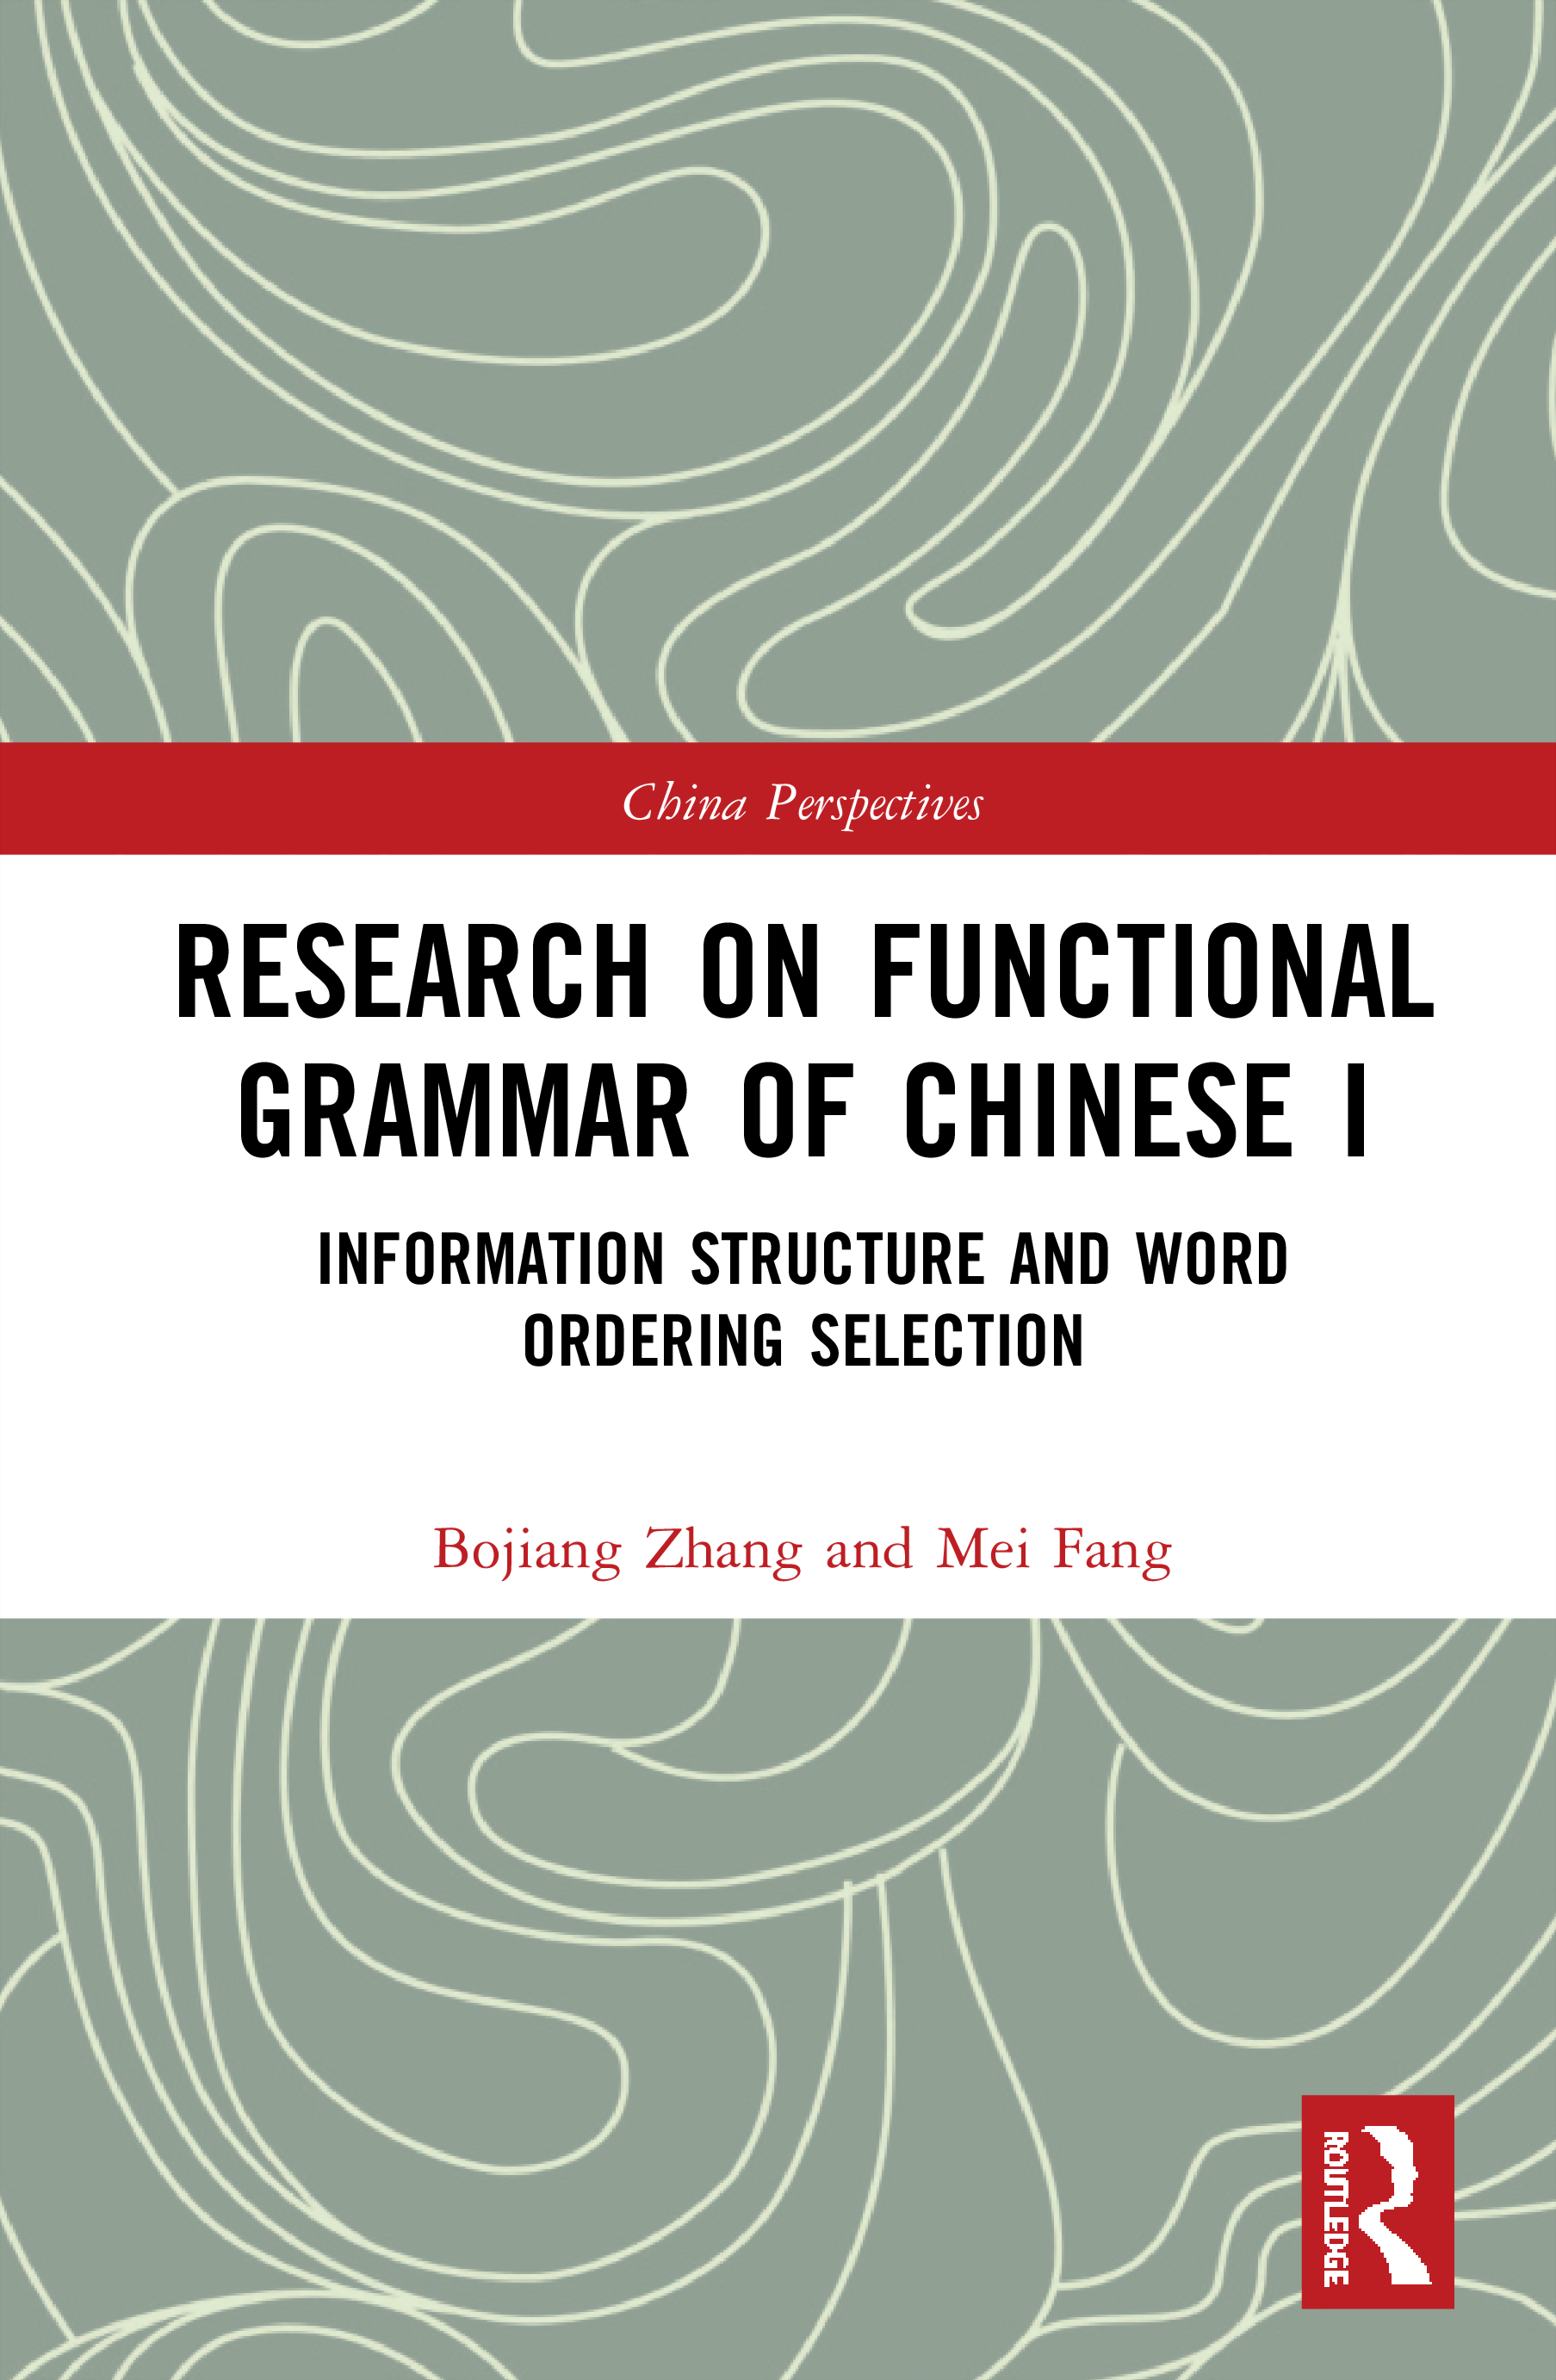 Research on Functional Grammar of Chinese I: Information Structure and Word Ordering Selection book cover